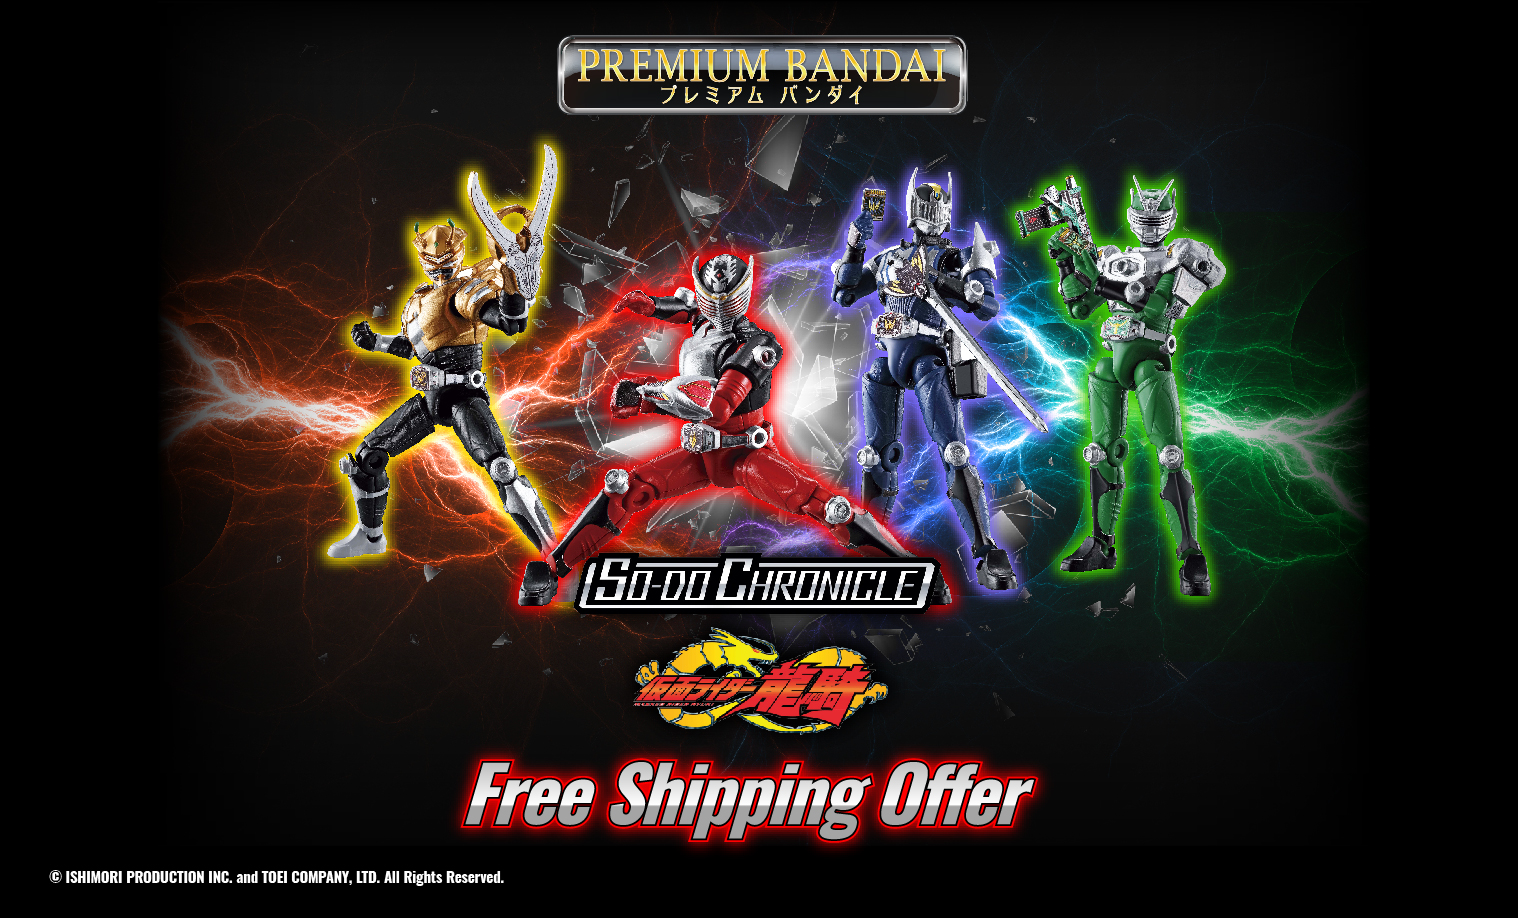 SO-DO CHRONICLE Kamen Rider Ryuki Series Free Shipping Offer